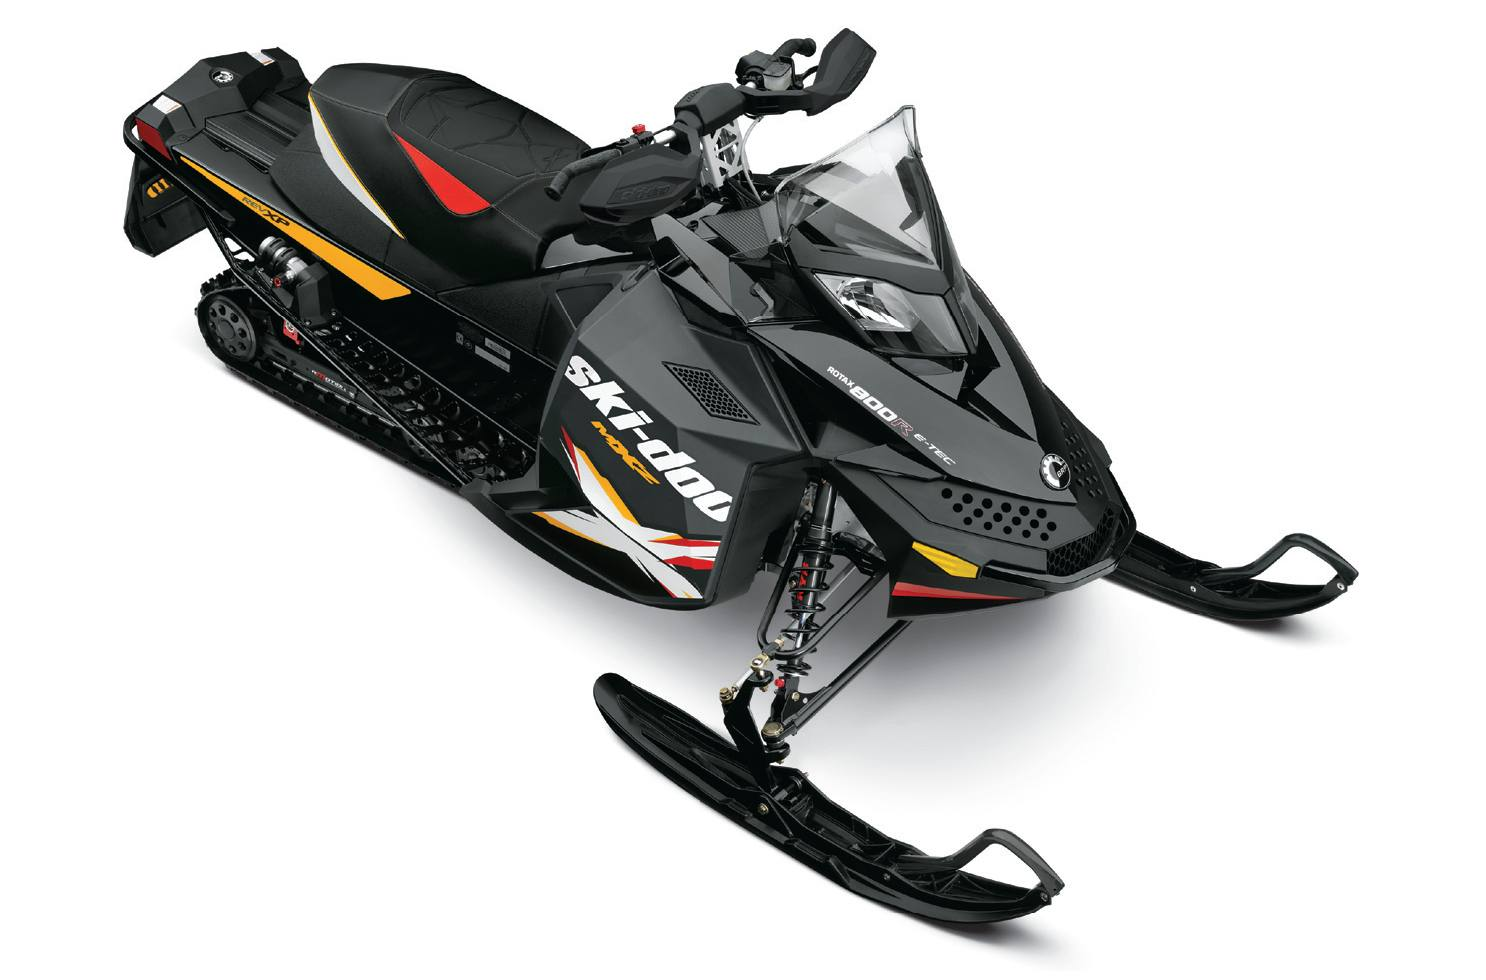 Ski Doo Wiring Diagram 2009 Summit 550f Library 2012 Mx Z X Rotax E Tec 800r For Sale In Wingham